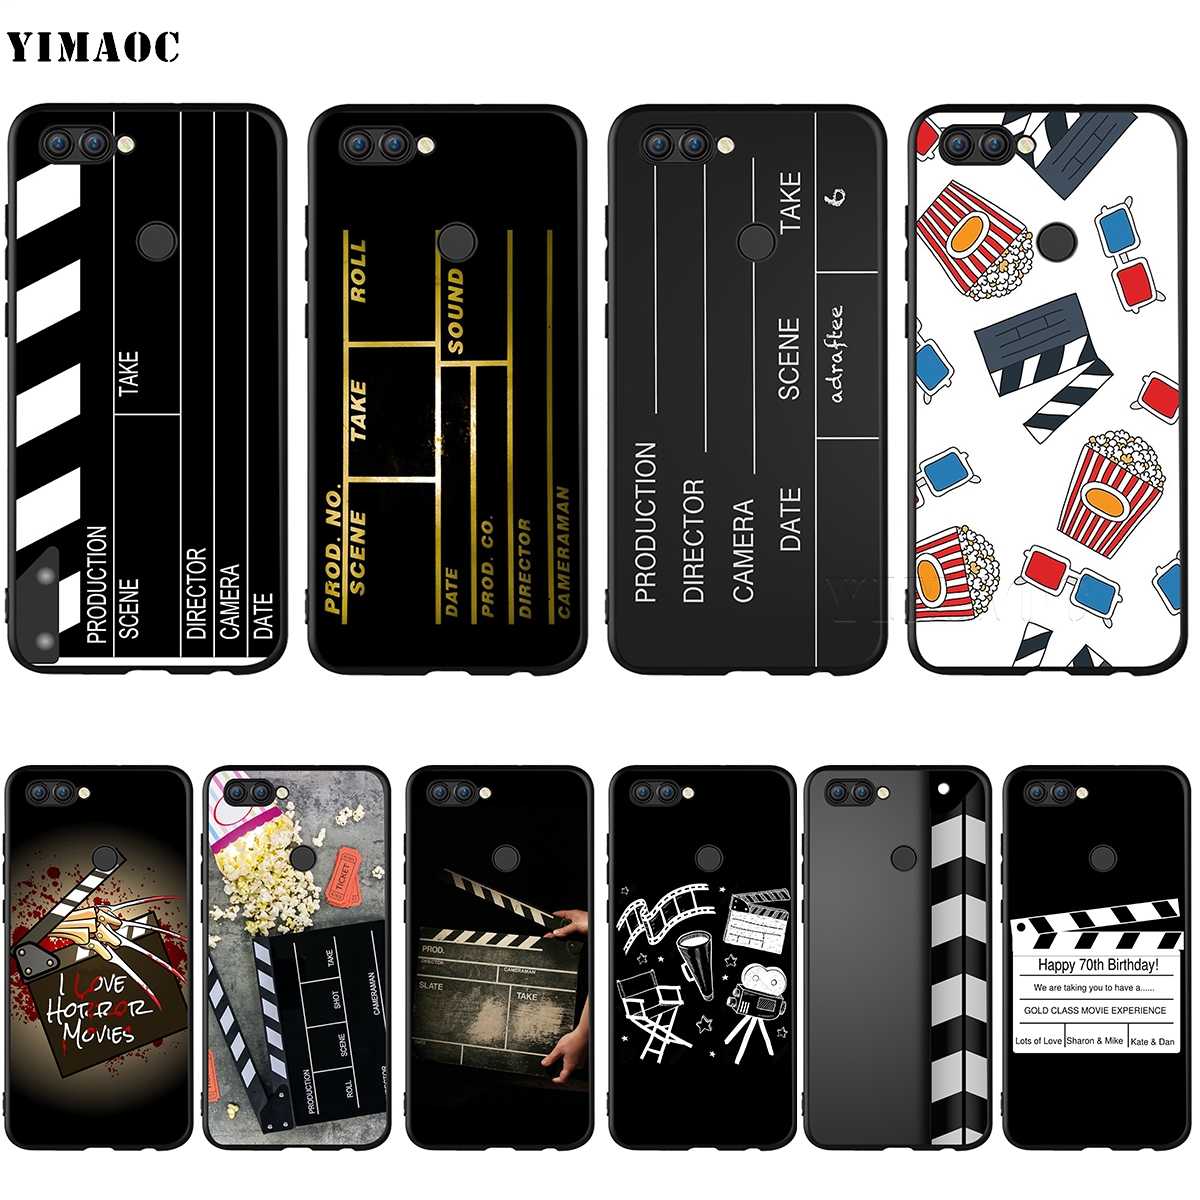 Cellphones & Telecommunications Back To The Future Boy Novelty Fundas Mobile Phone Shell Cases For Huawei P Smart Plus Mate Honor 7a 7c 8c 8x 9 P10 P20 Lite Pro